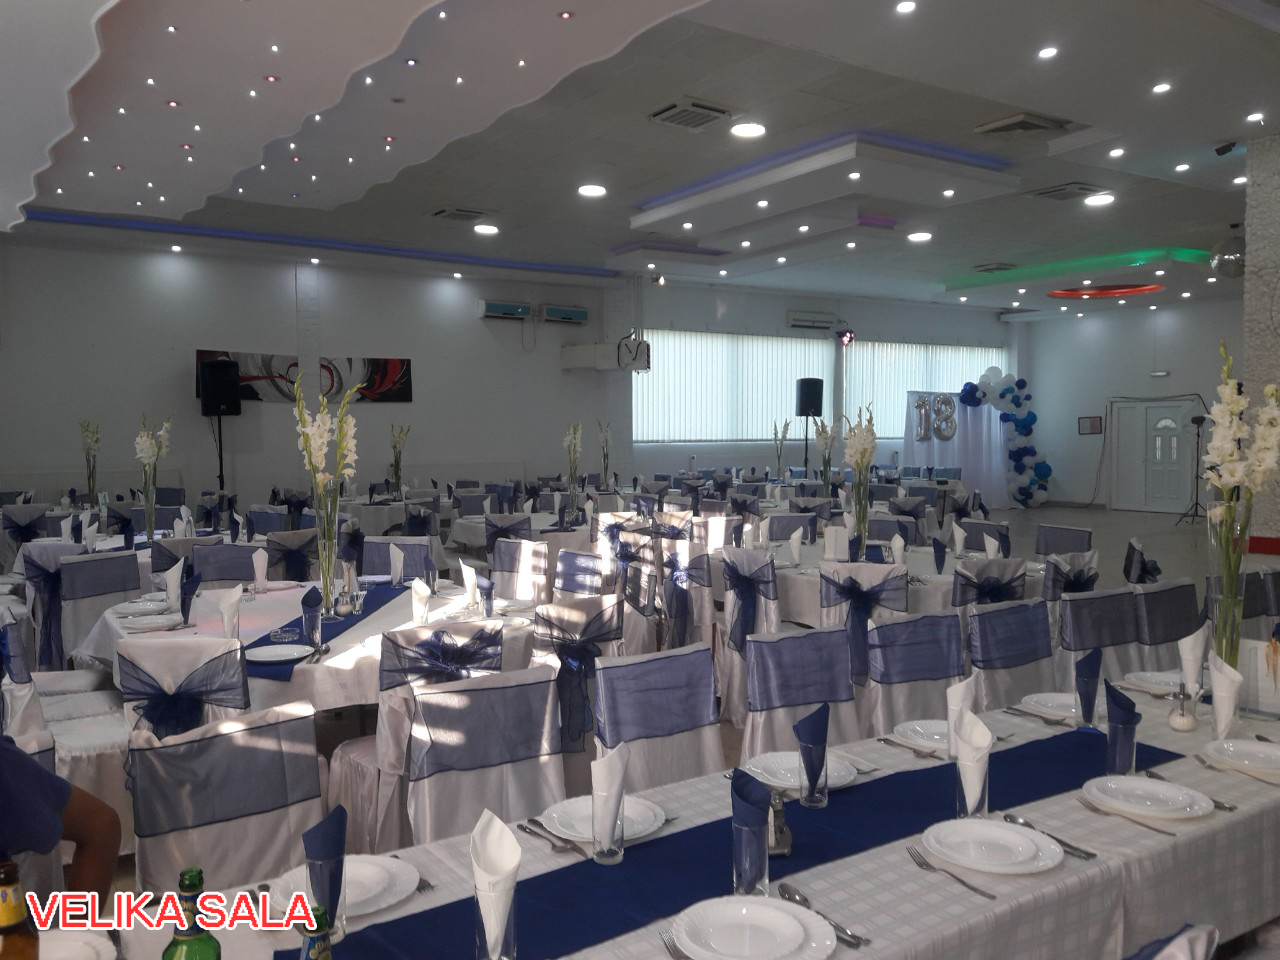 GRAND HALL KACAREVO AND CAFFE GRILL TICINO Renting halls Pancevo - Photo 8